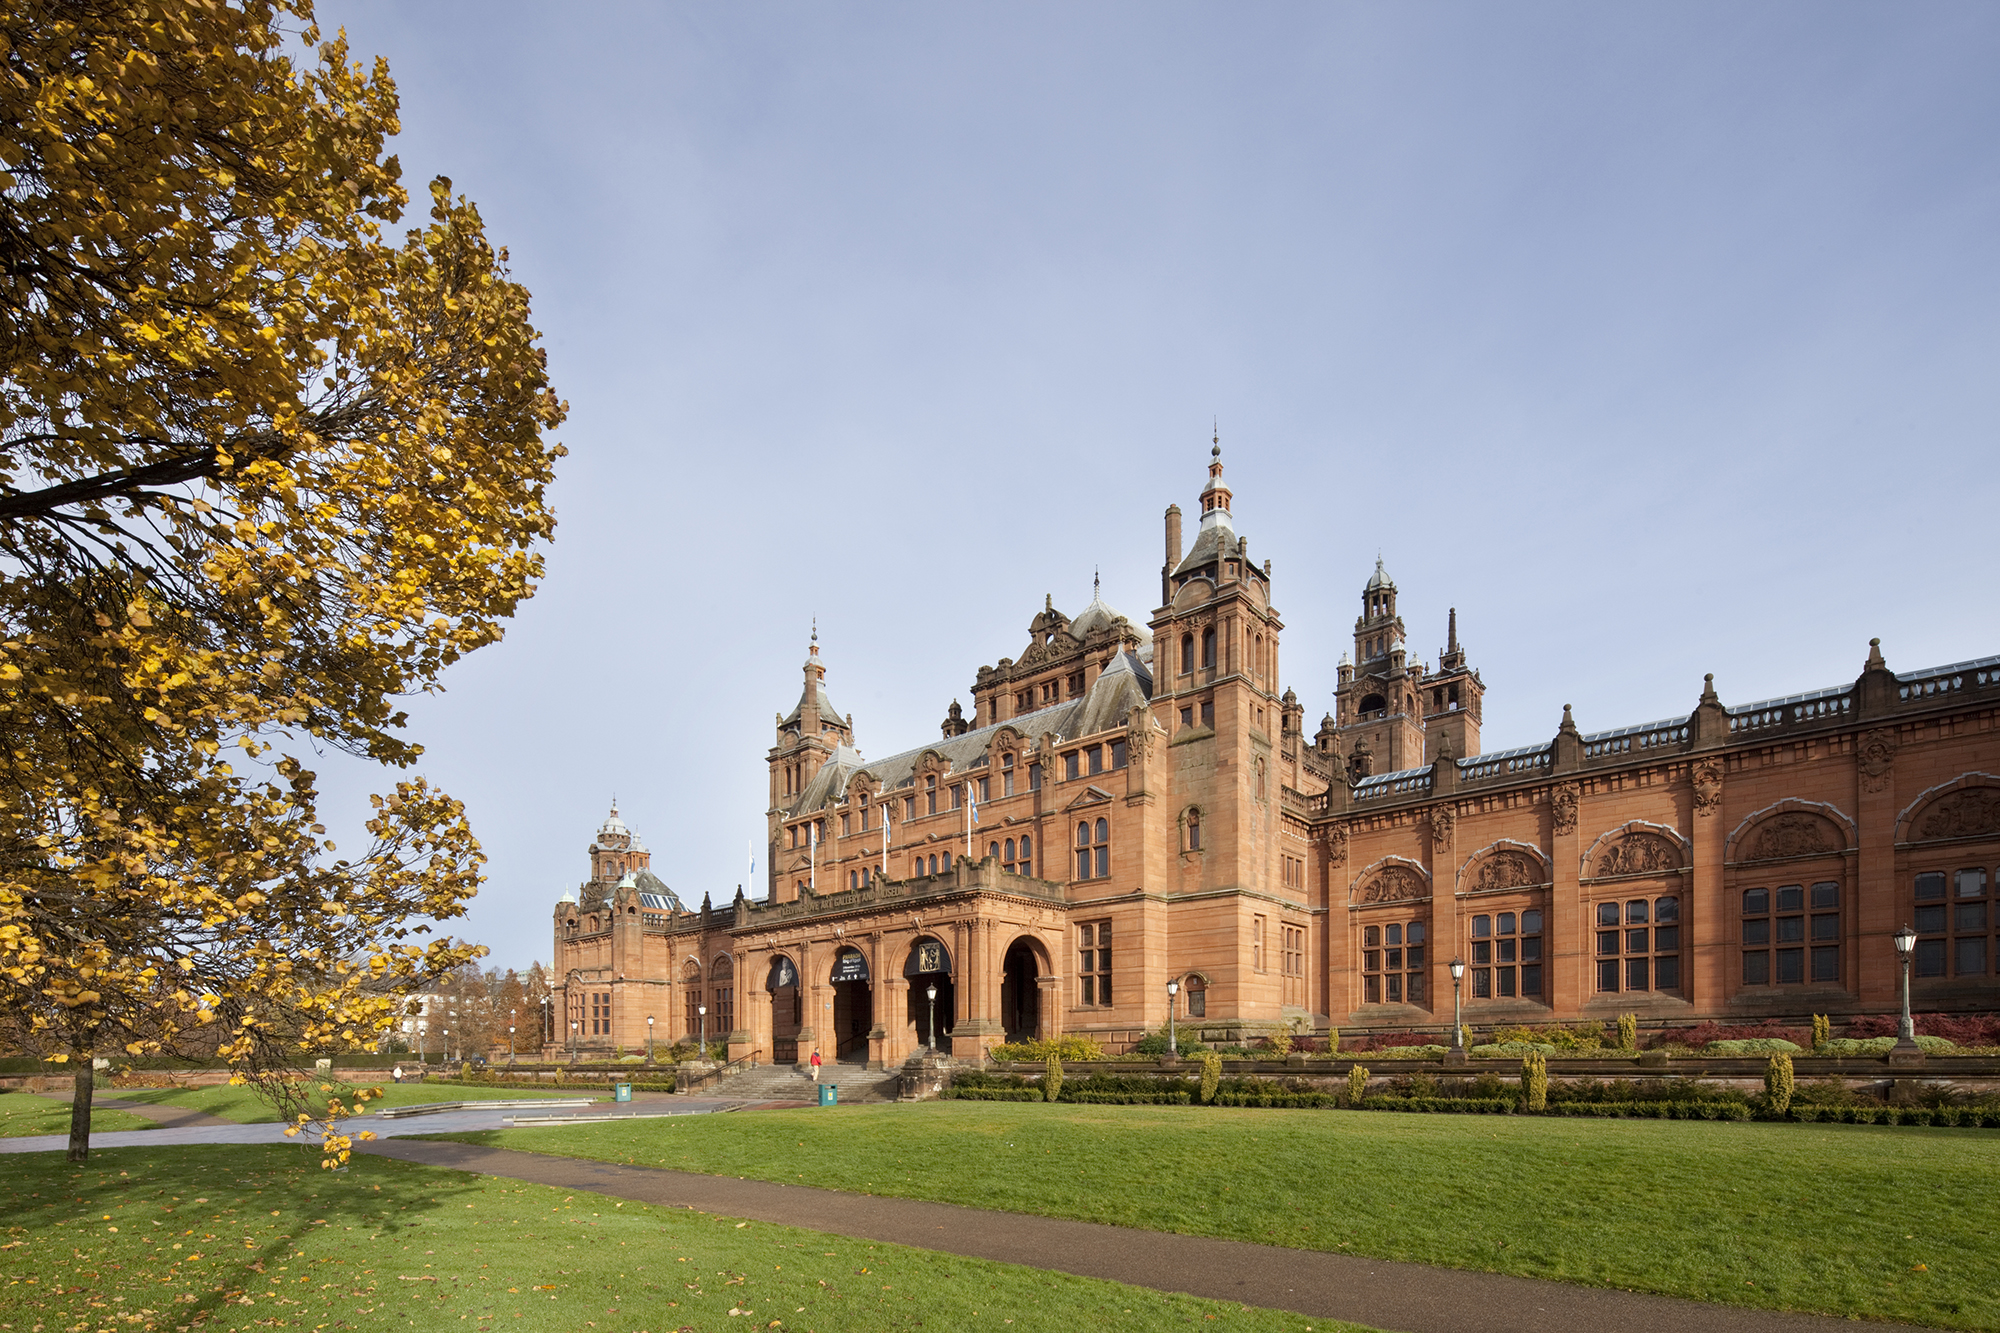 The Kelvingrove Museum and Art Gallery